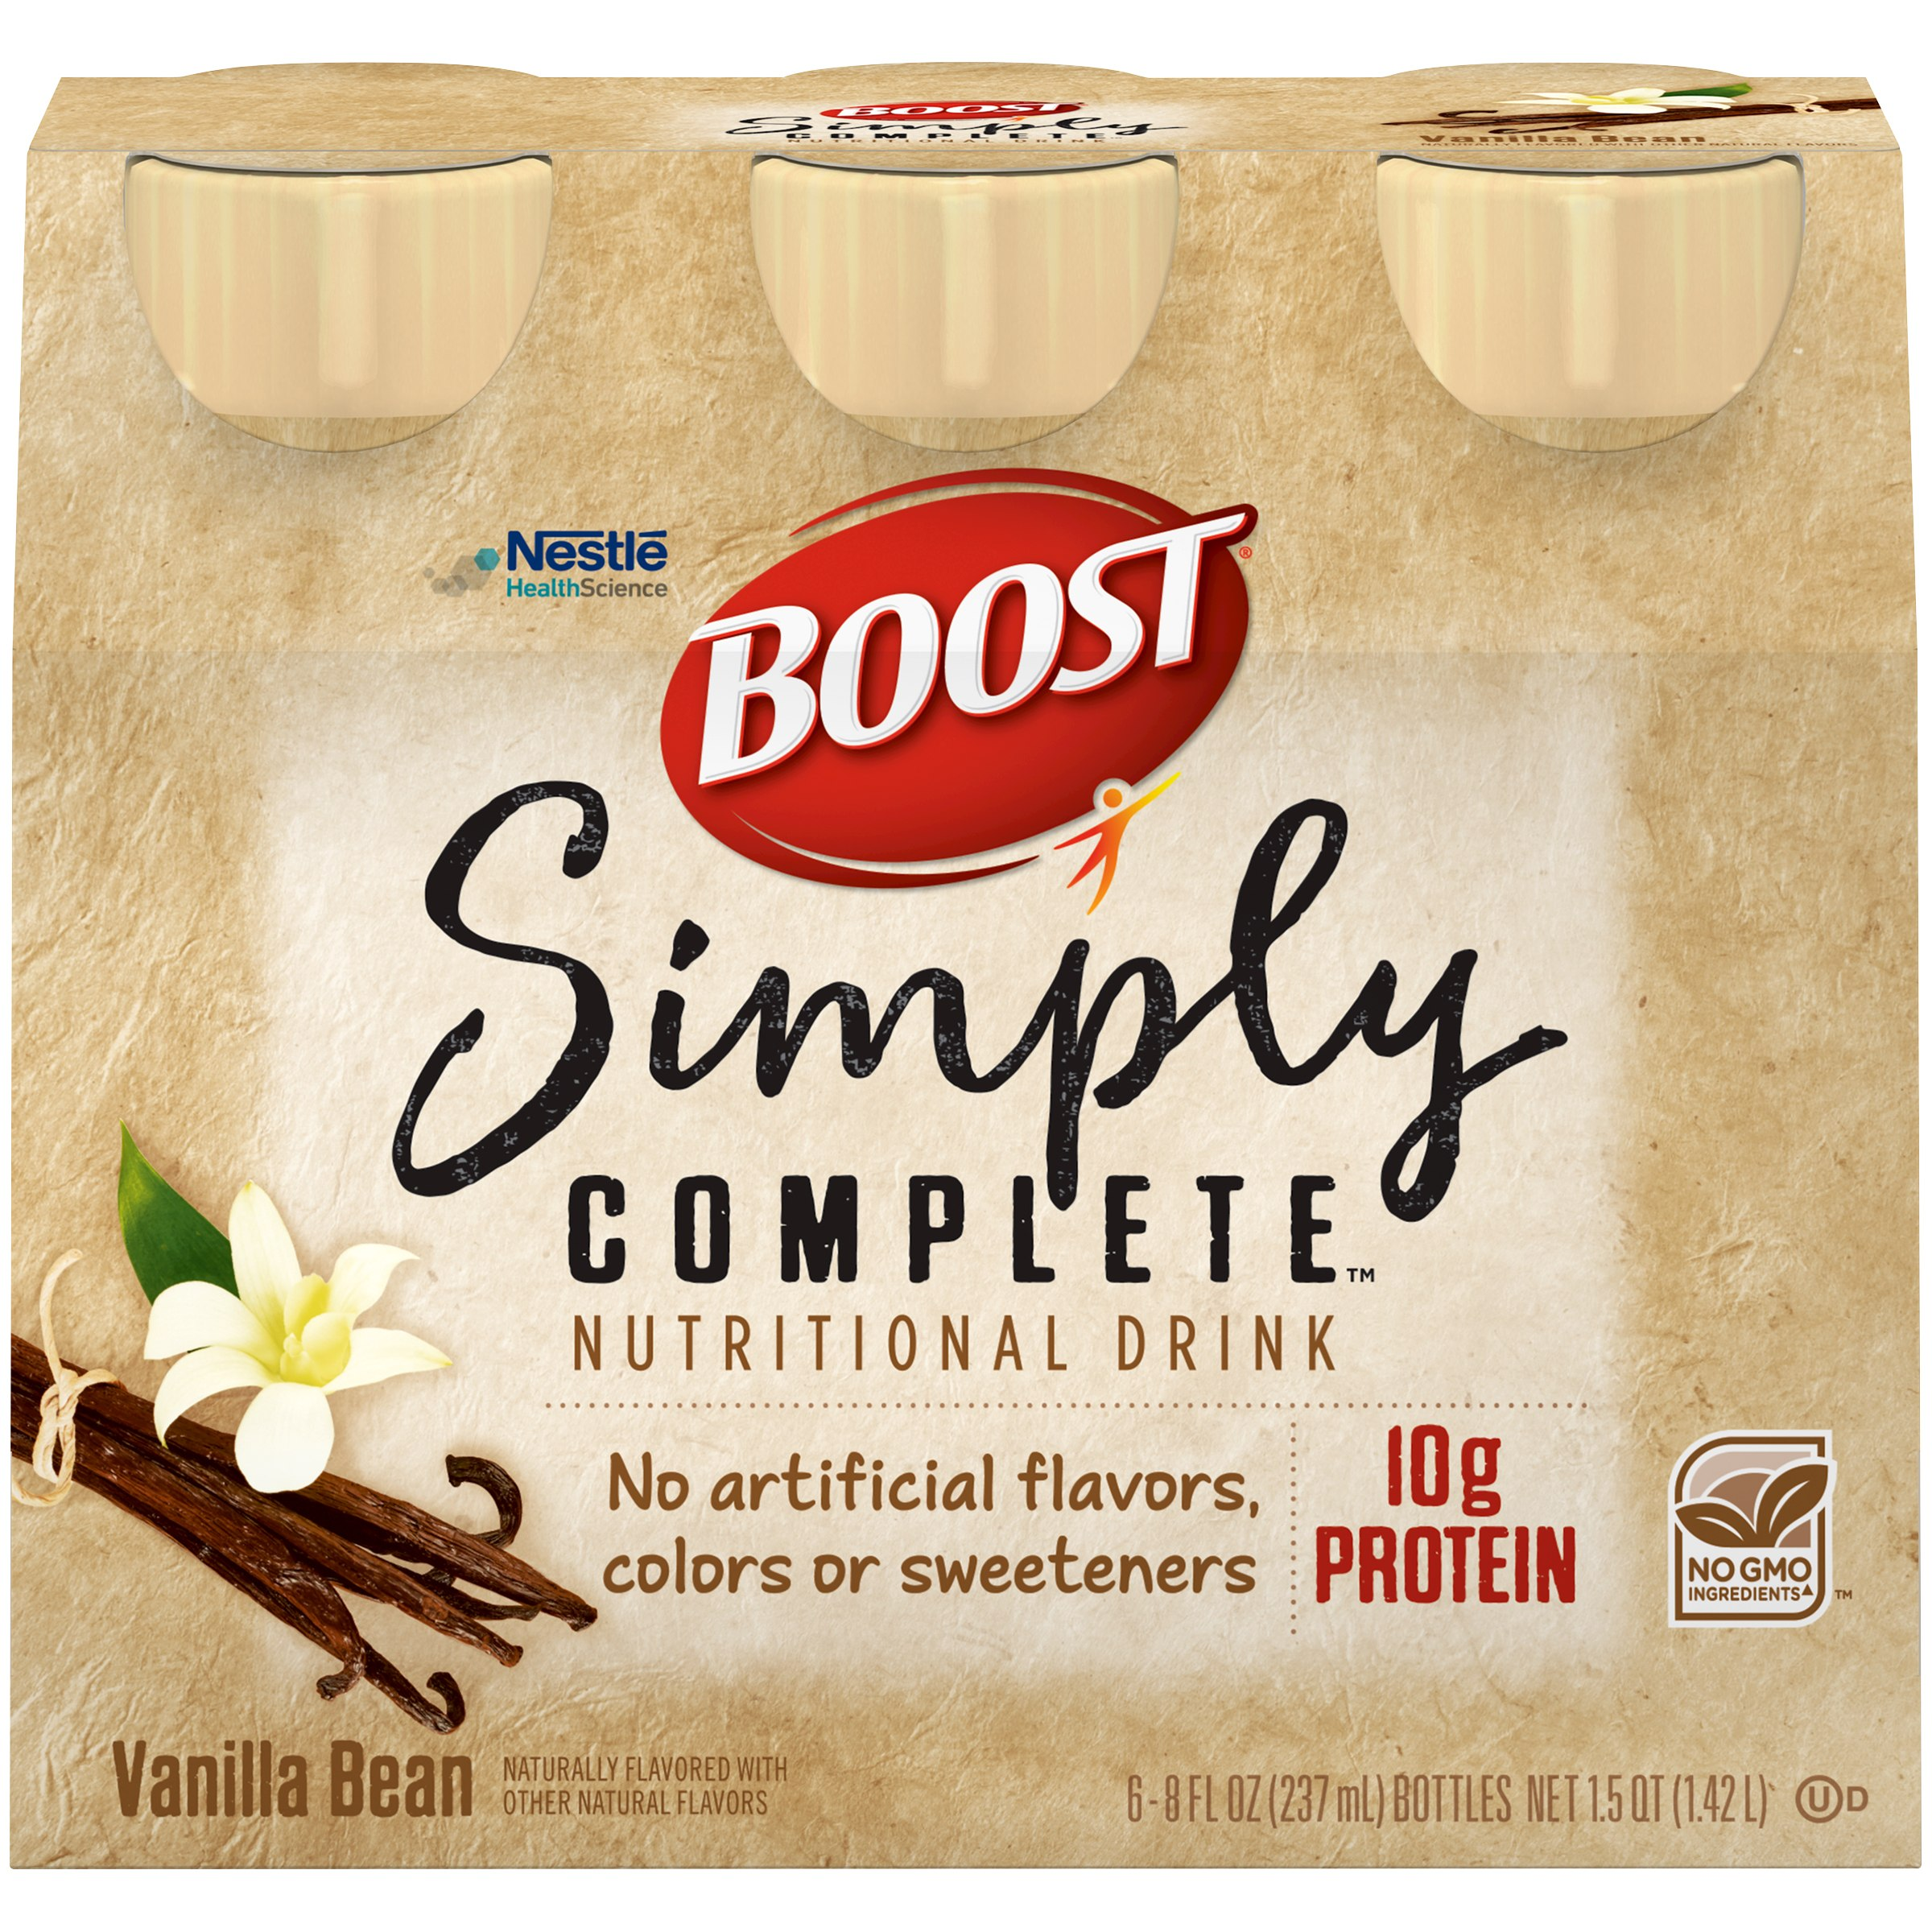 BOOST SIMPLY COMPLETE Vanilla Bean 6-8 fl. oz. Bottles